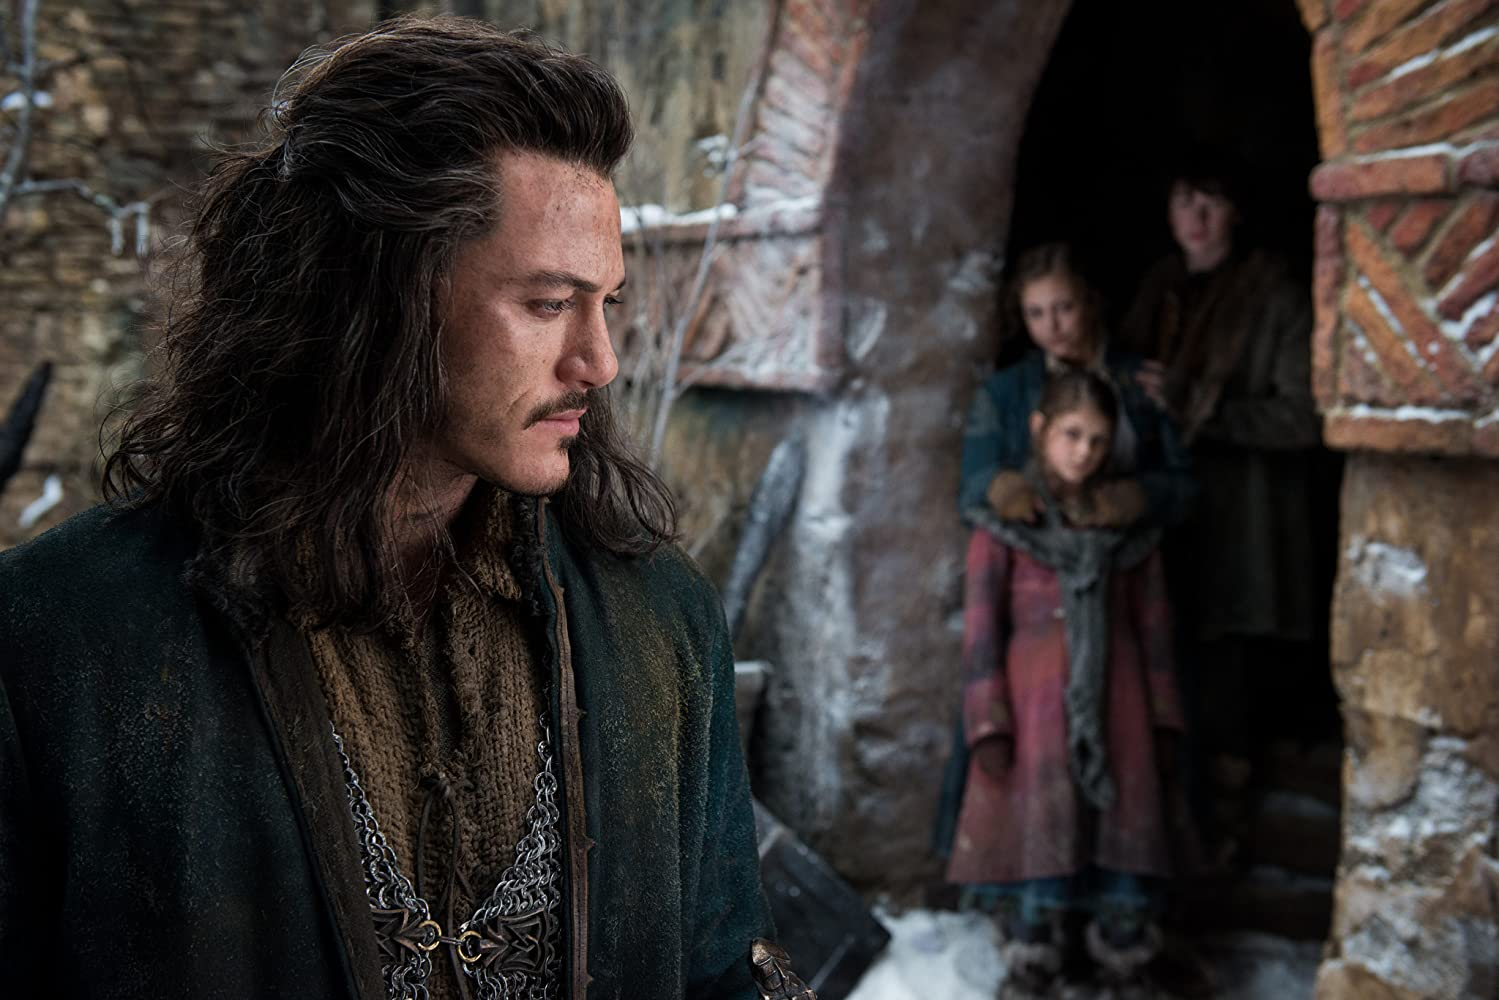 Luke Evans, John Bell, Peggy Nesbitt, and Mary Nesbitt in The Hobbit: The Battle of the Five Armies (2014)